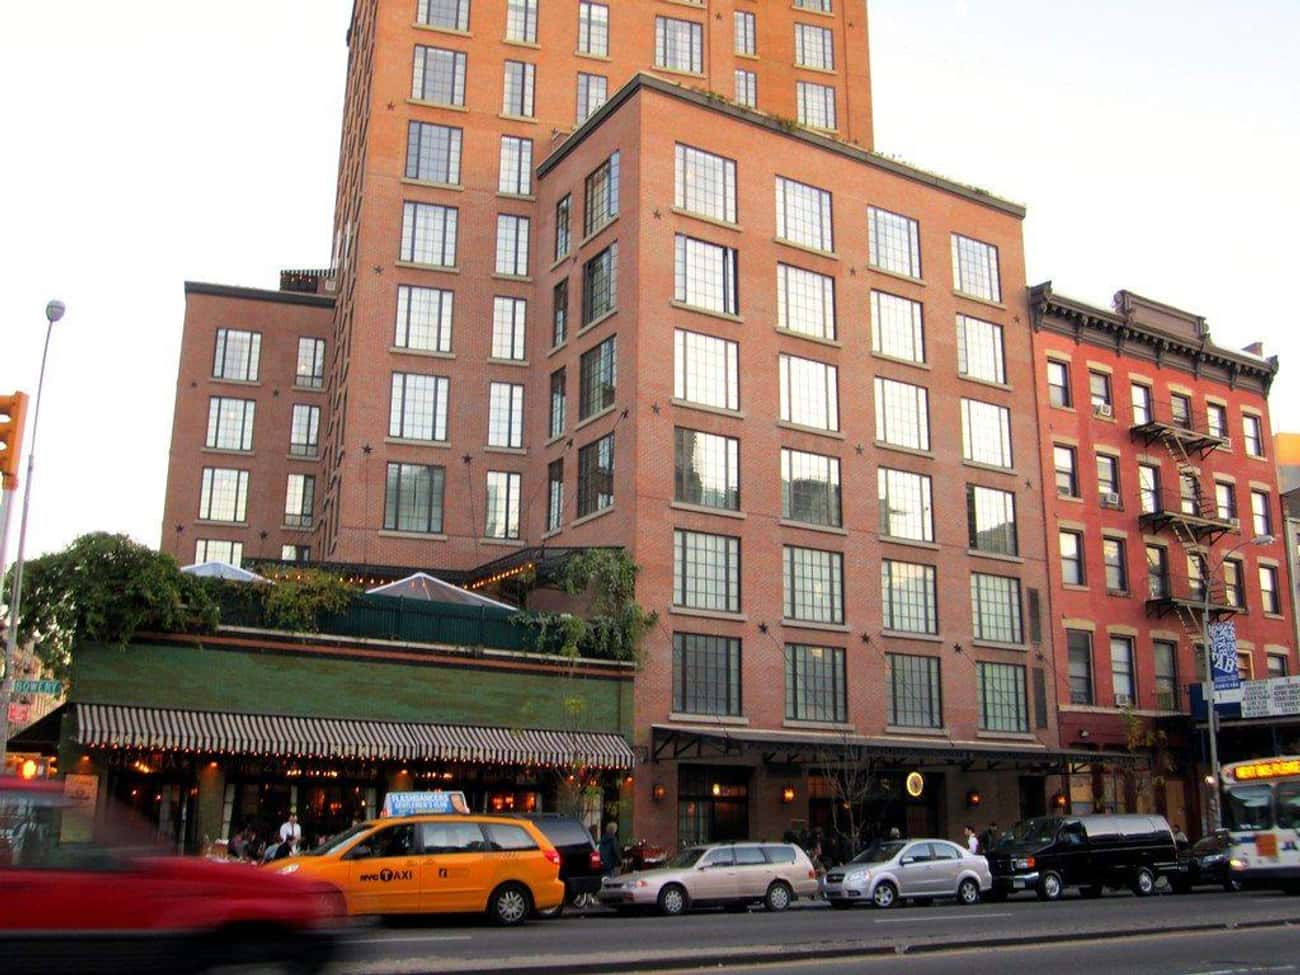 The Bowery Hotel May Be The Most Haunted Hotel In NYC